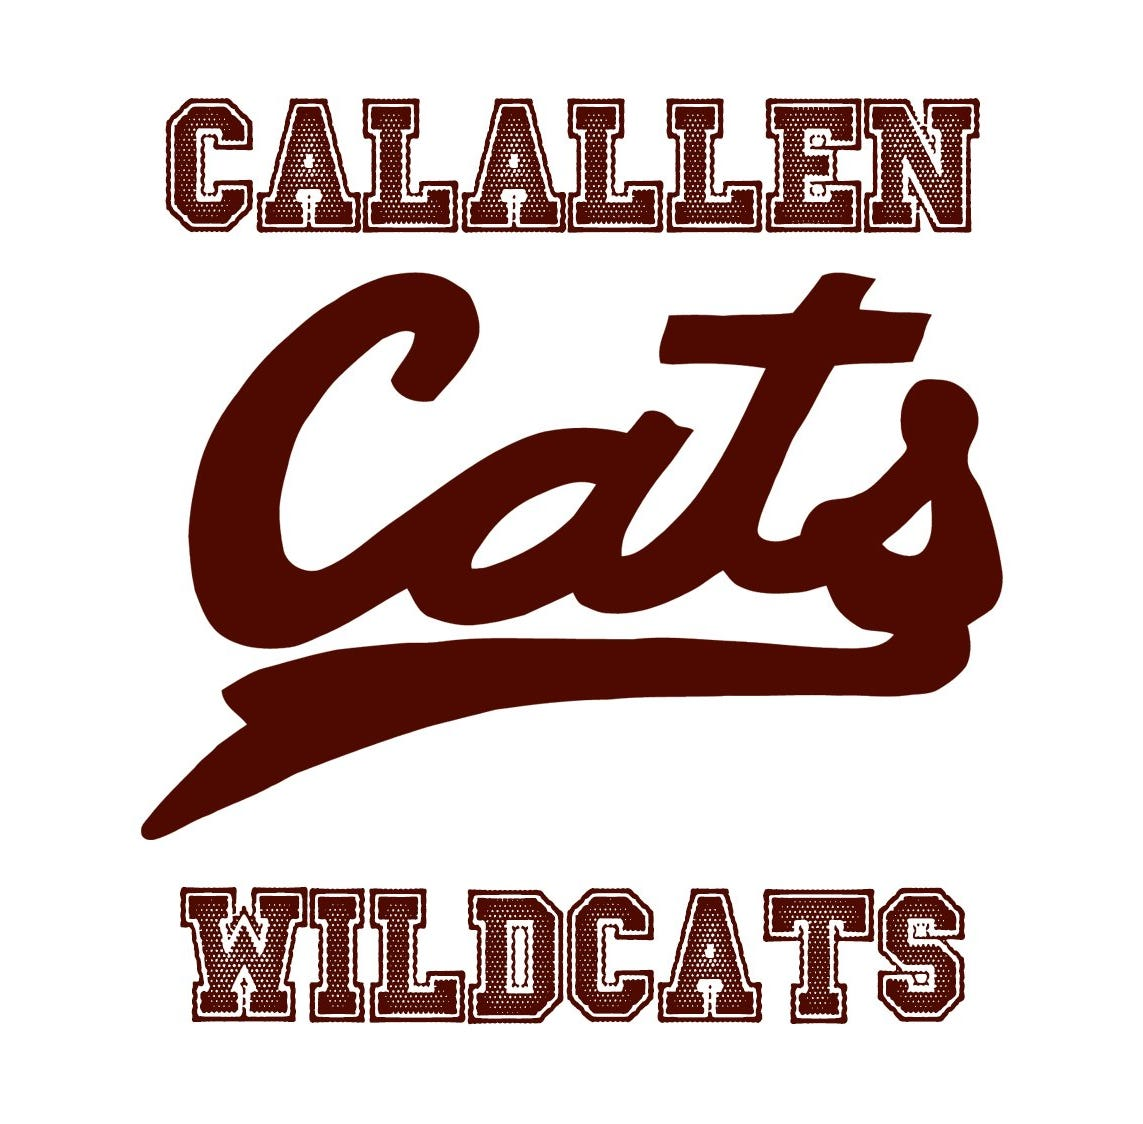 How do we show that the cheerleaders' vulgar video isn't who Calallen is?